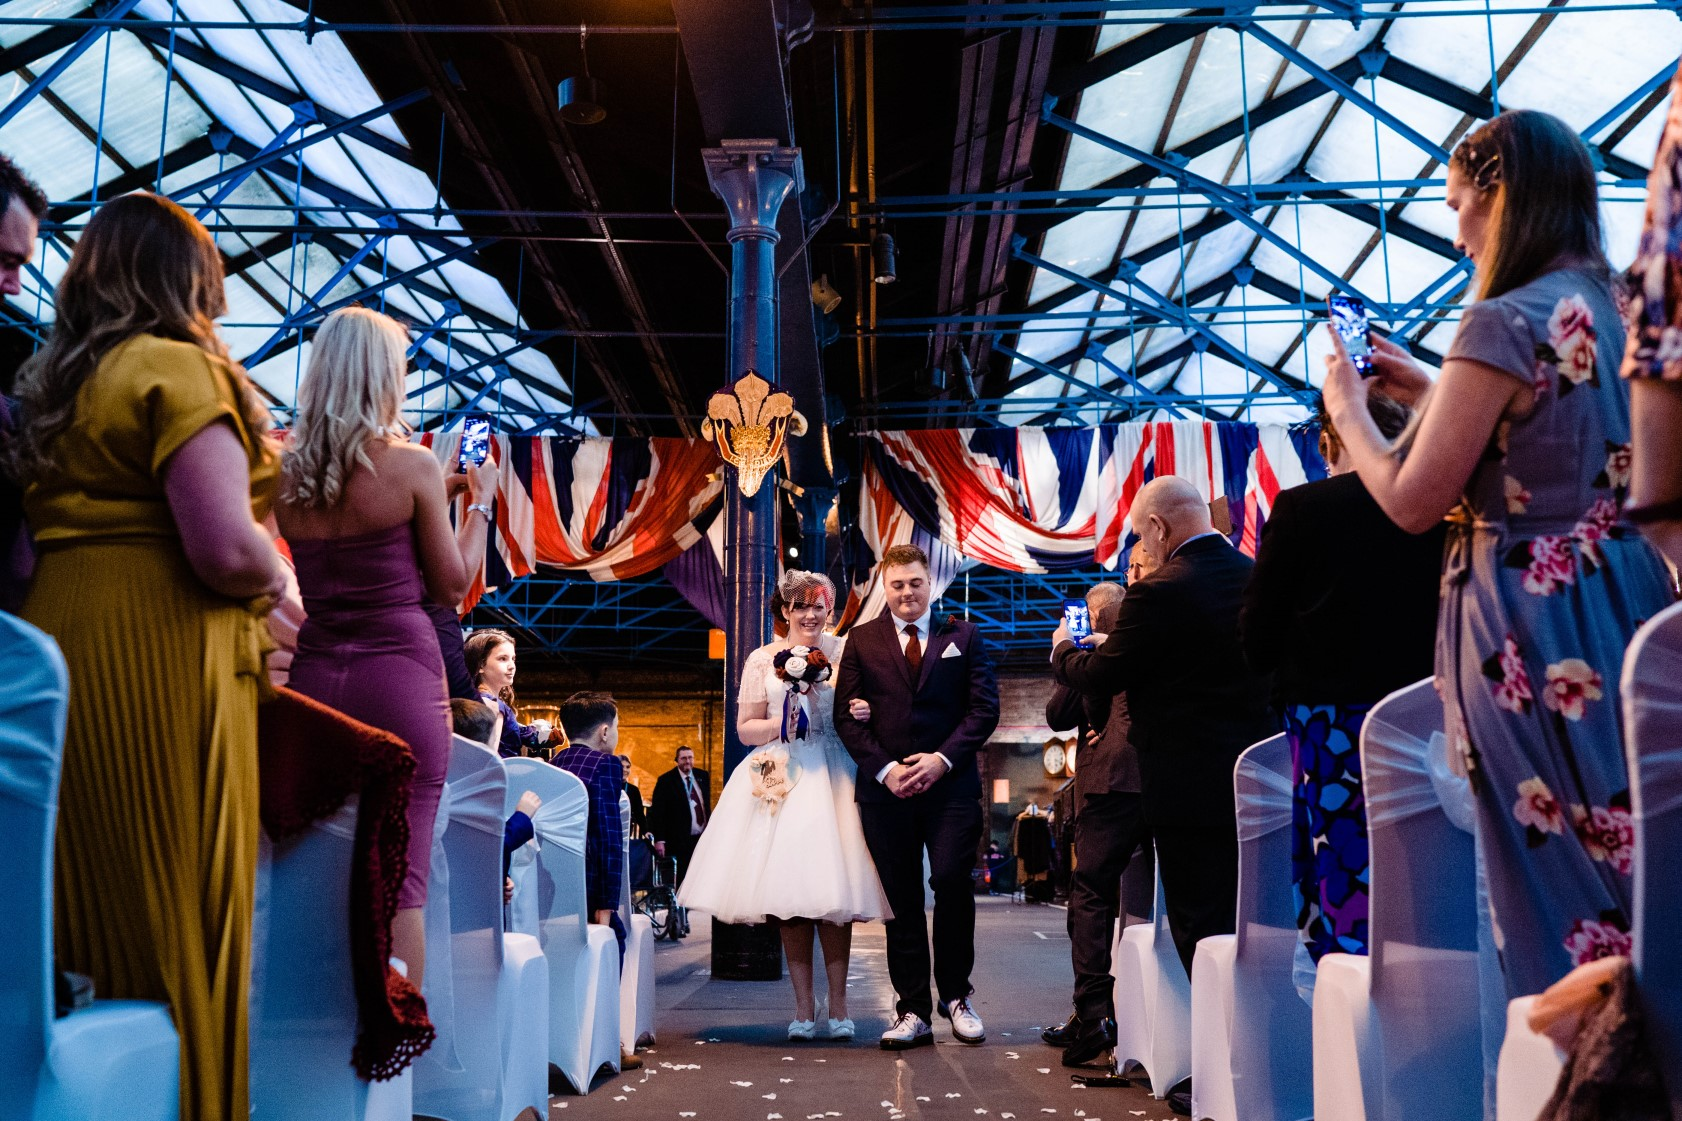 Industrial Railway Wedding- Vicki Clayson Photography- Unconventional Wedding- Unique Wedding Venue- wedding ceremony in railway museum